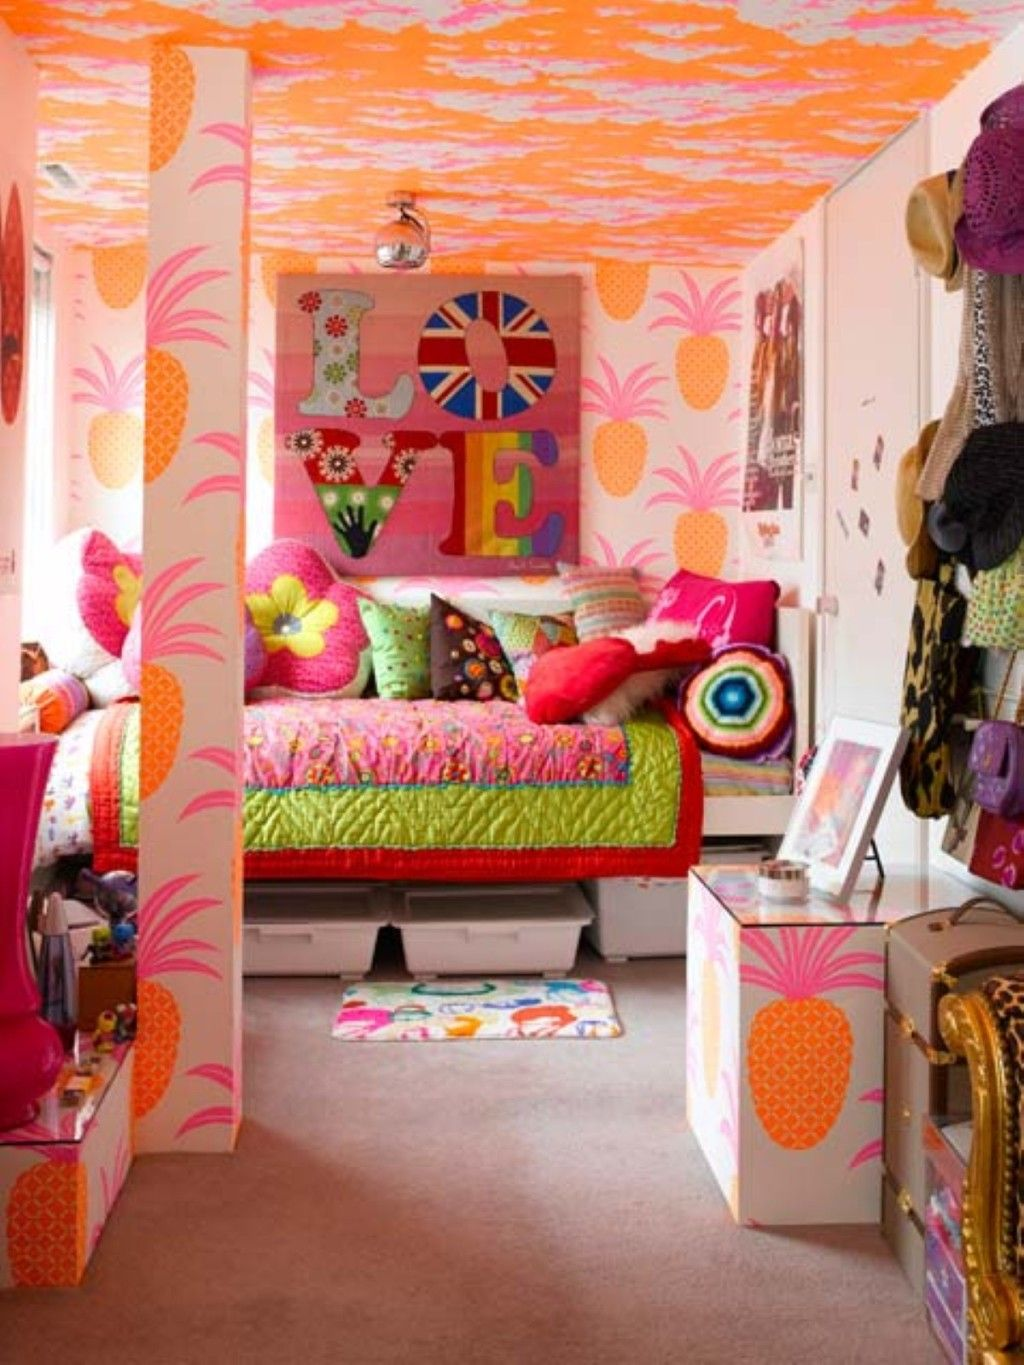 Kids room cool tropical girl bedroom in a mix of colors for Kids dream room